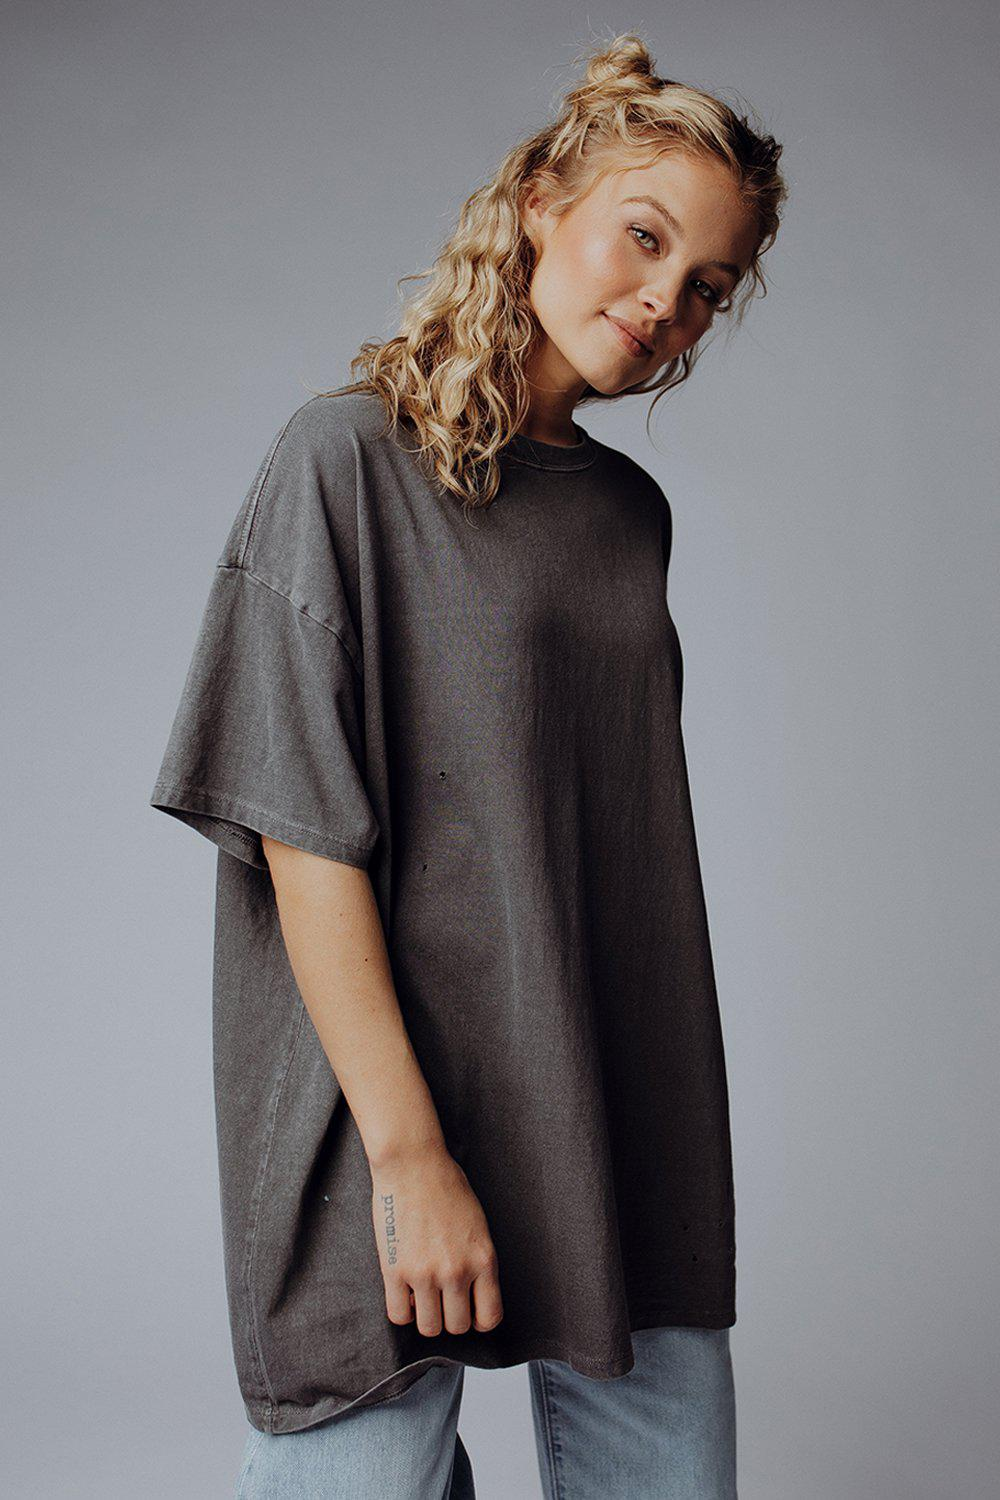 best_seller, Not Your Boyfriend's Tee in Charcoal - FINAL SALE, Tees, women's clothing, dresses, skirts, coats, jackets, shoes, boots, tops, tee shirts, jeans, free people, levi's, rollas, jumpsuits, bottoms, tops, sweaters, pullovers, pants, shorts, sweats,.